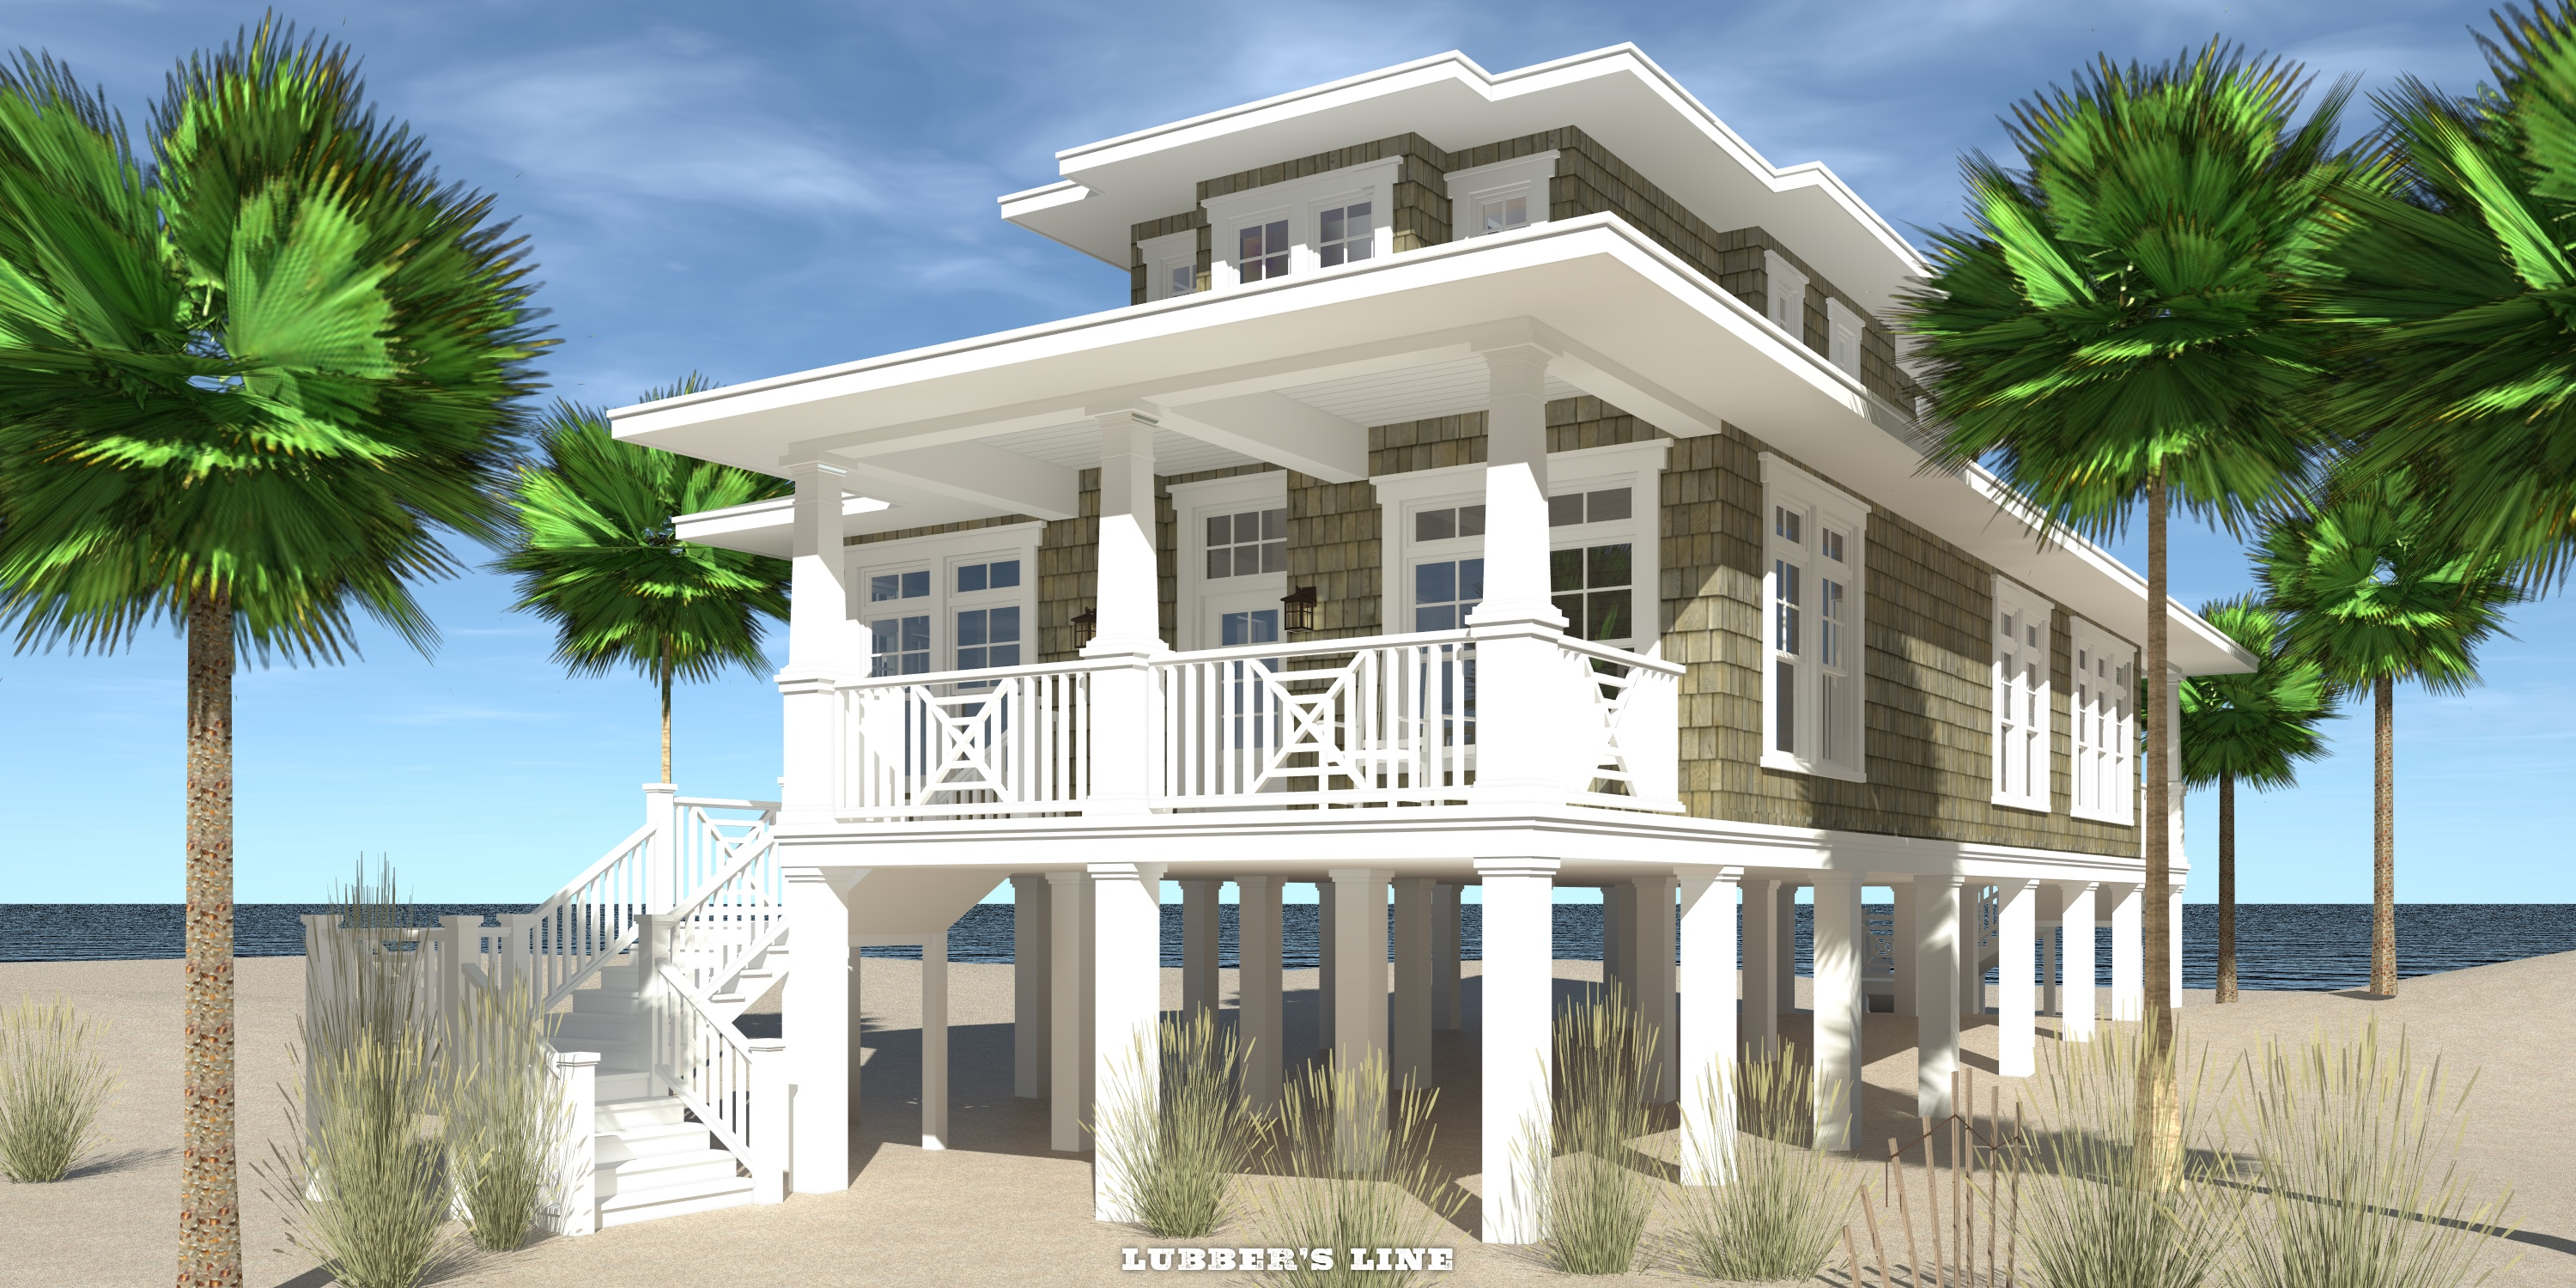 Beach house plans with front view for Coastal style house plans